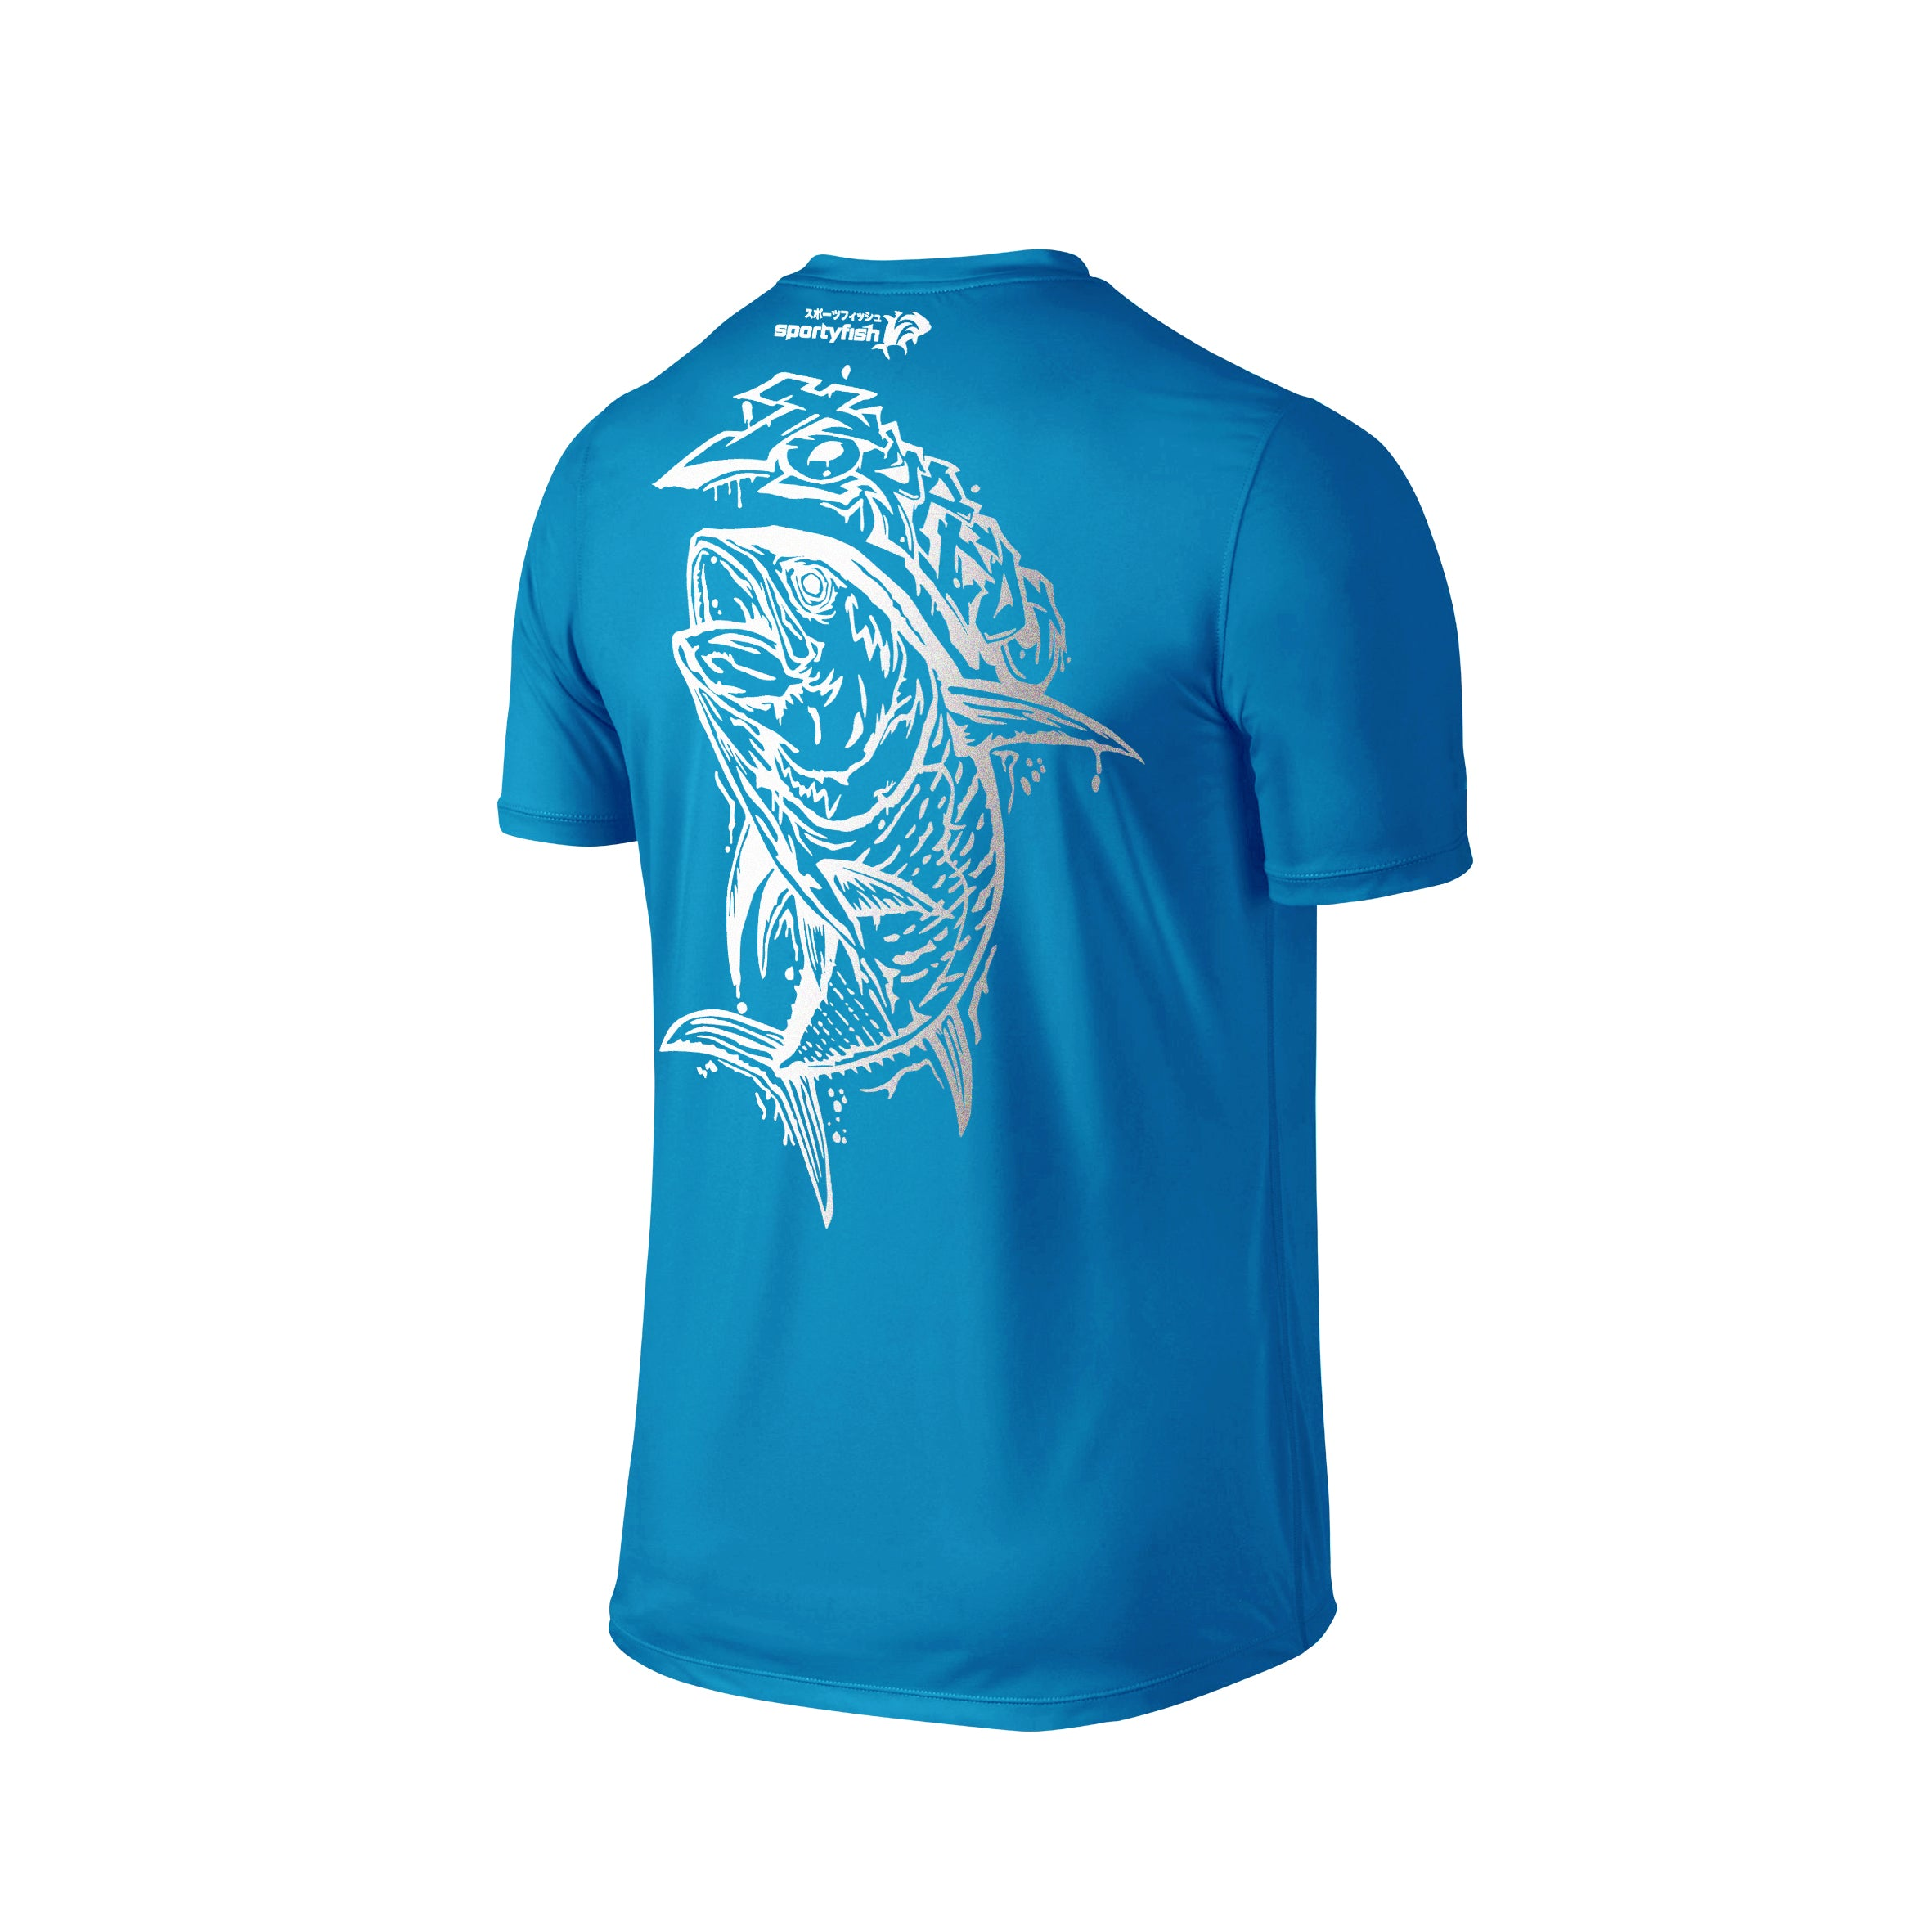 Wildstyle Graffiti Series Turquoise T-shirt(back view)Silver: Yellowfin Tuna